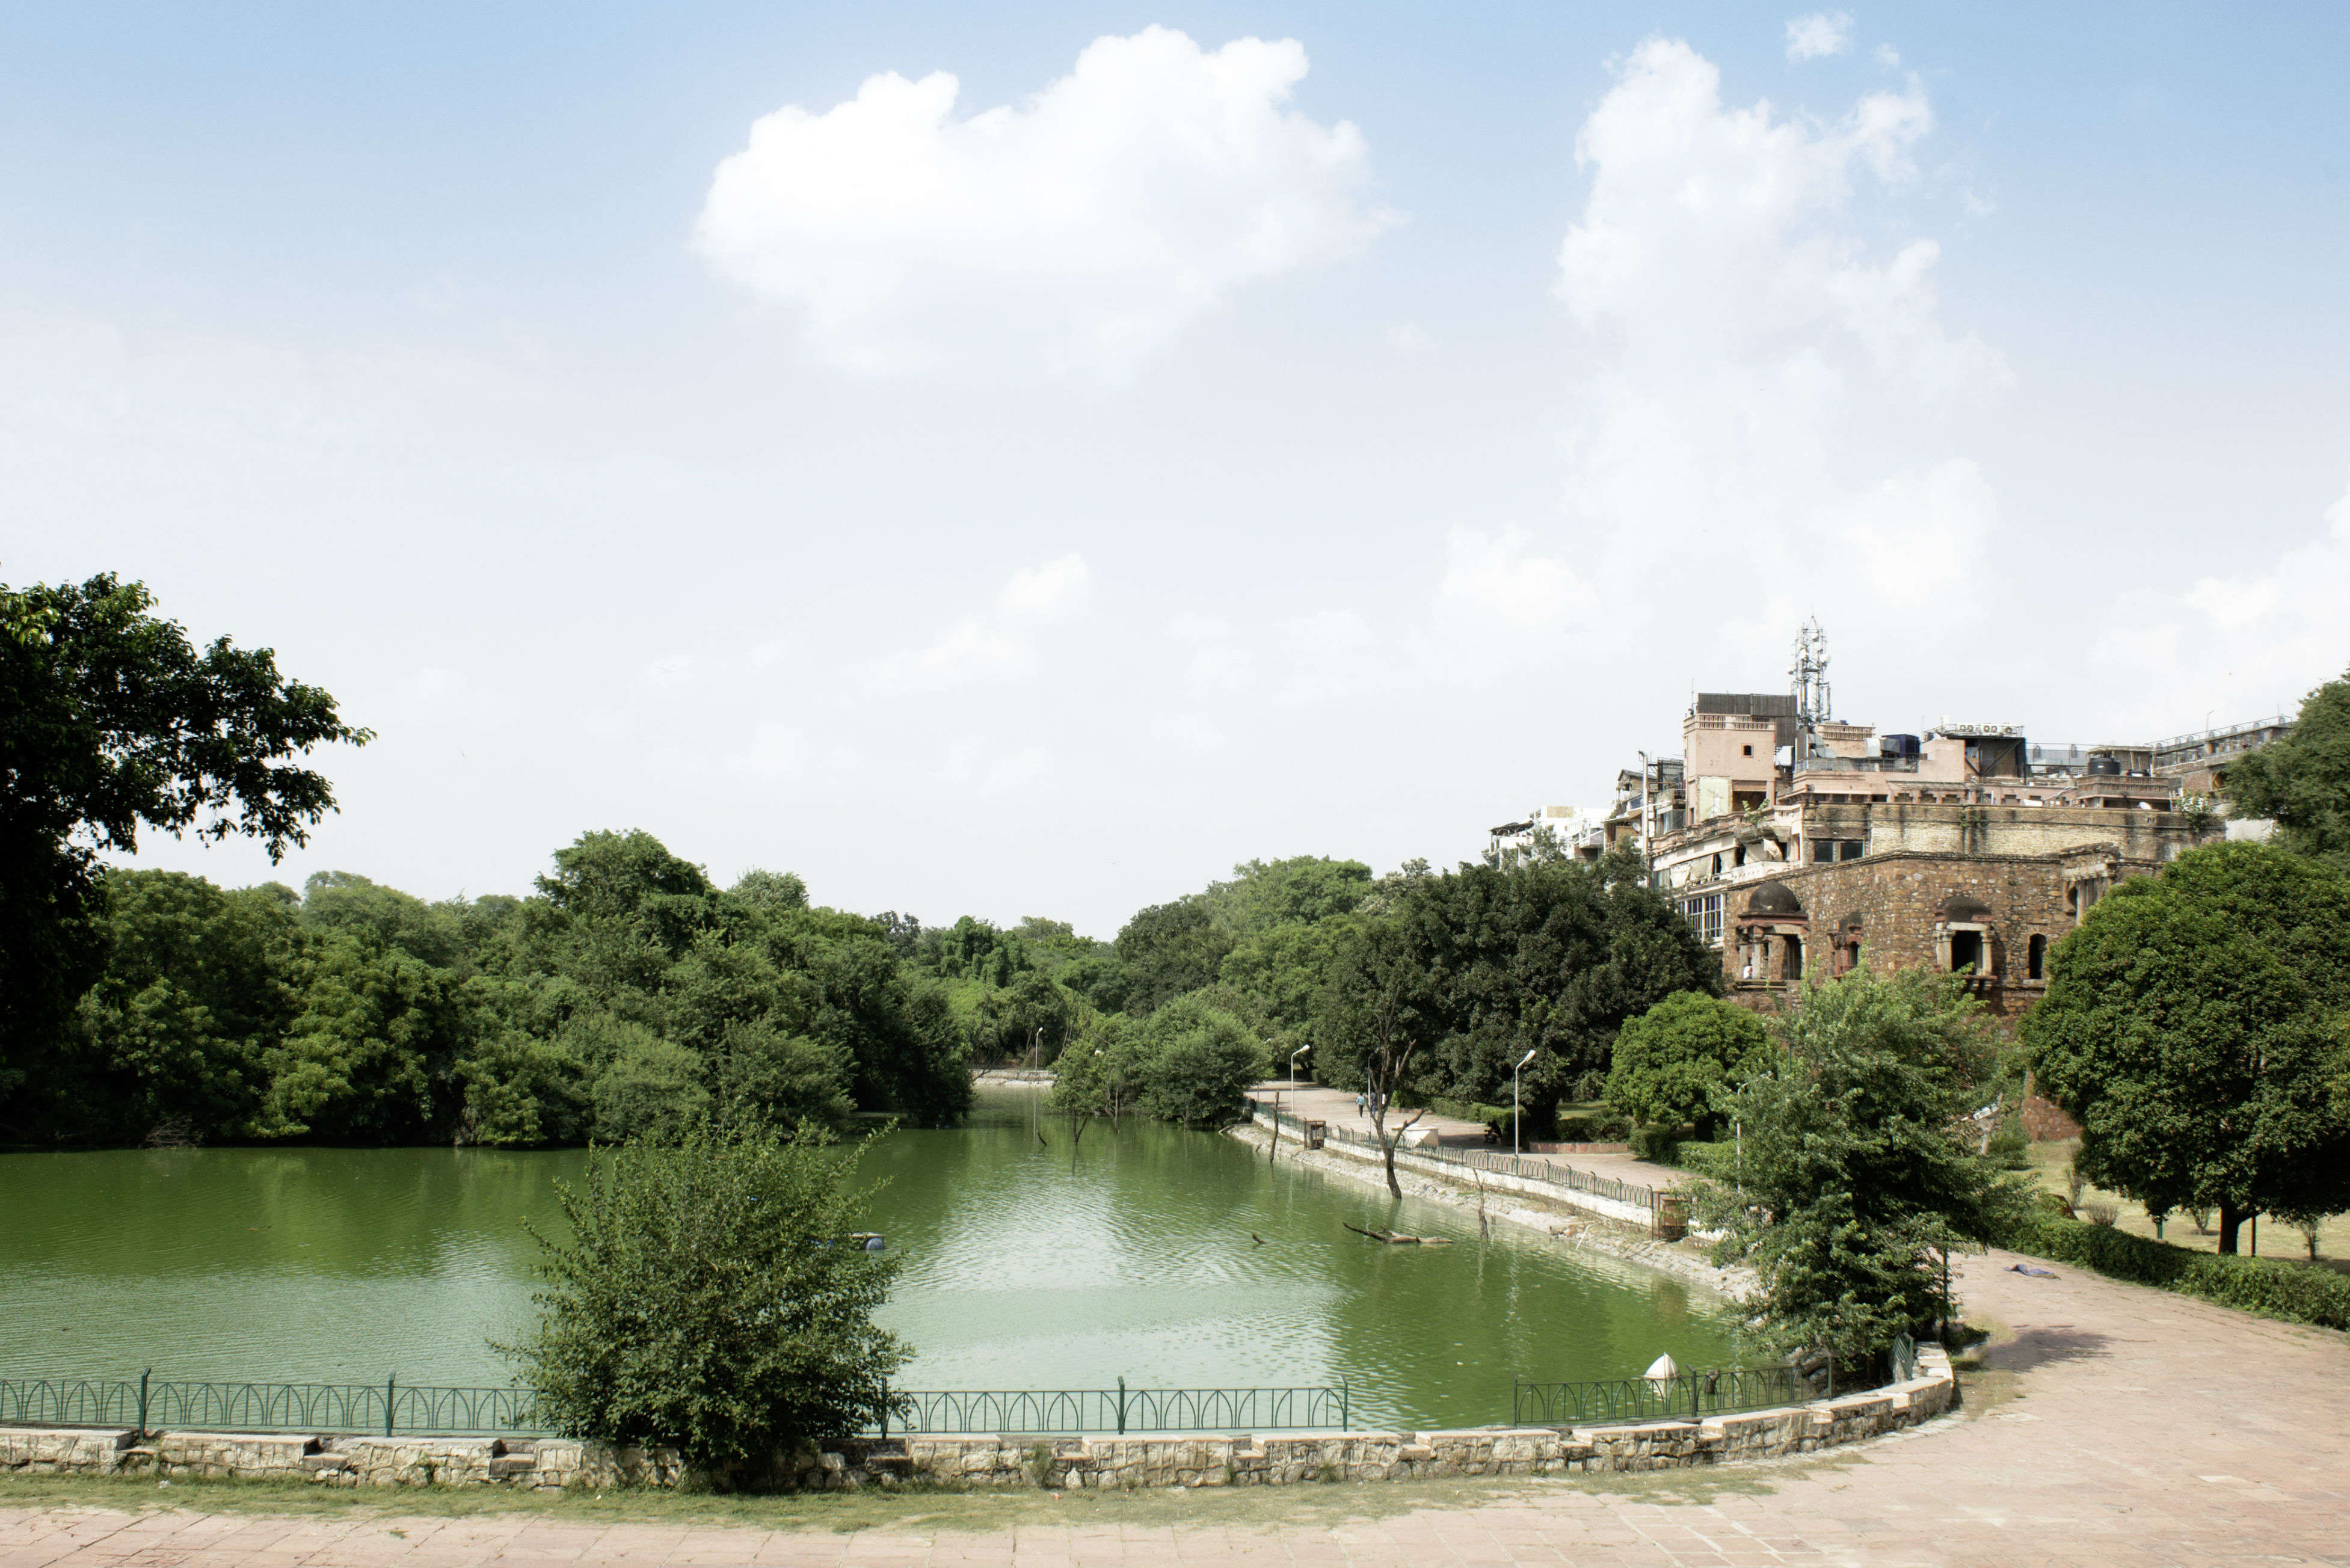 A trip to Hauz Khas monuments would now require an entry fee